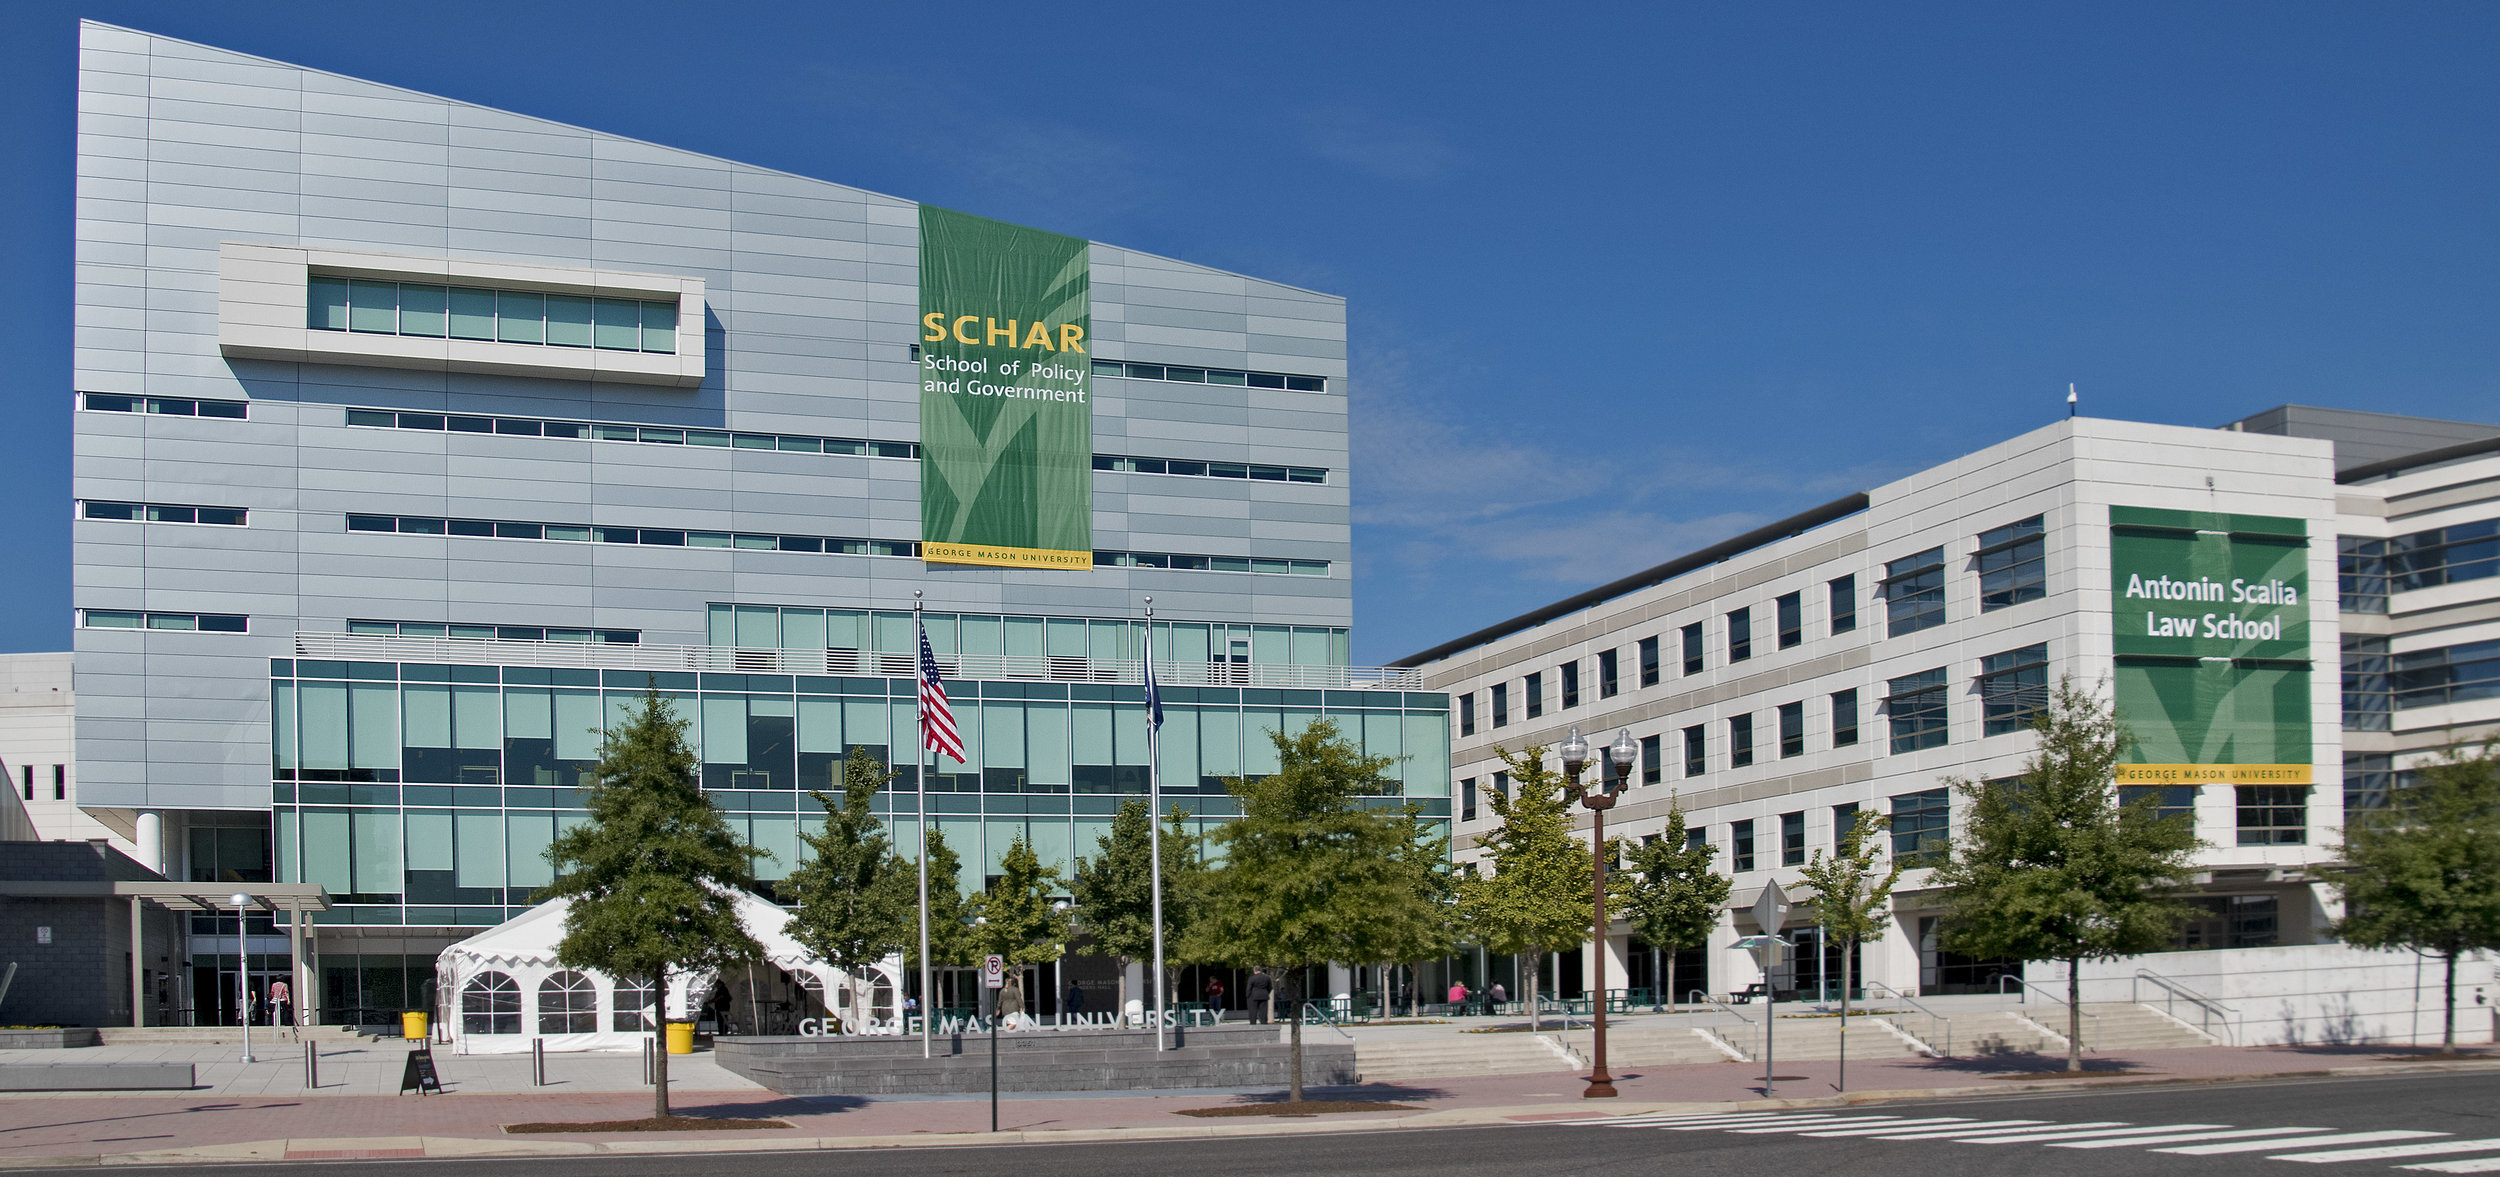 The Schar School of Policy and Government at George Mason University.